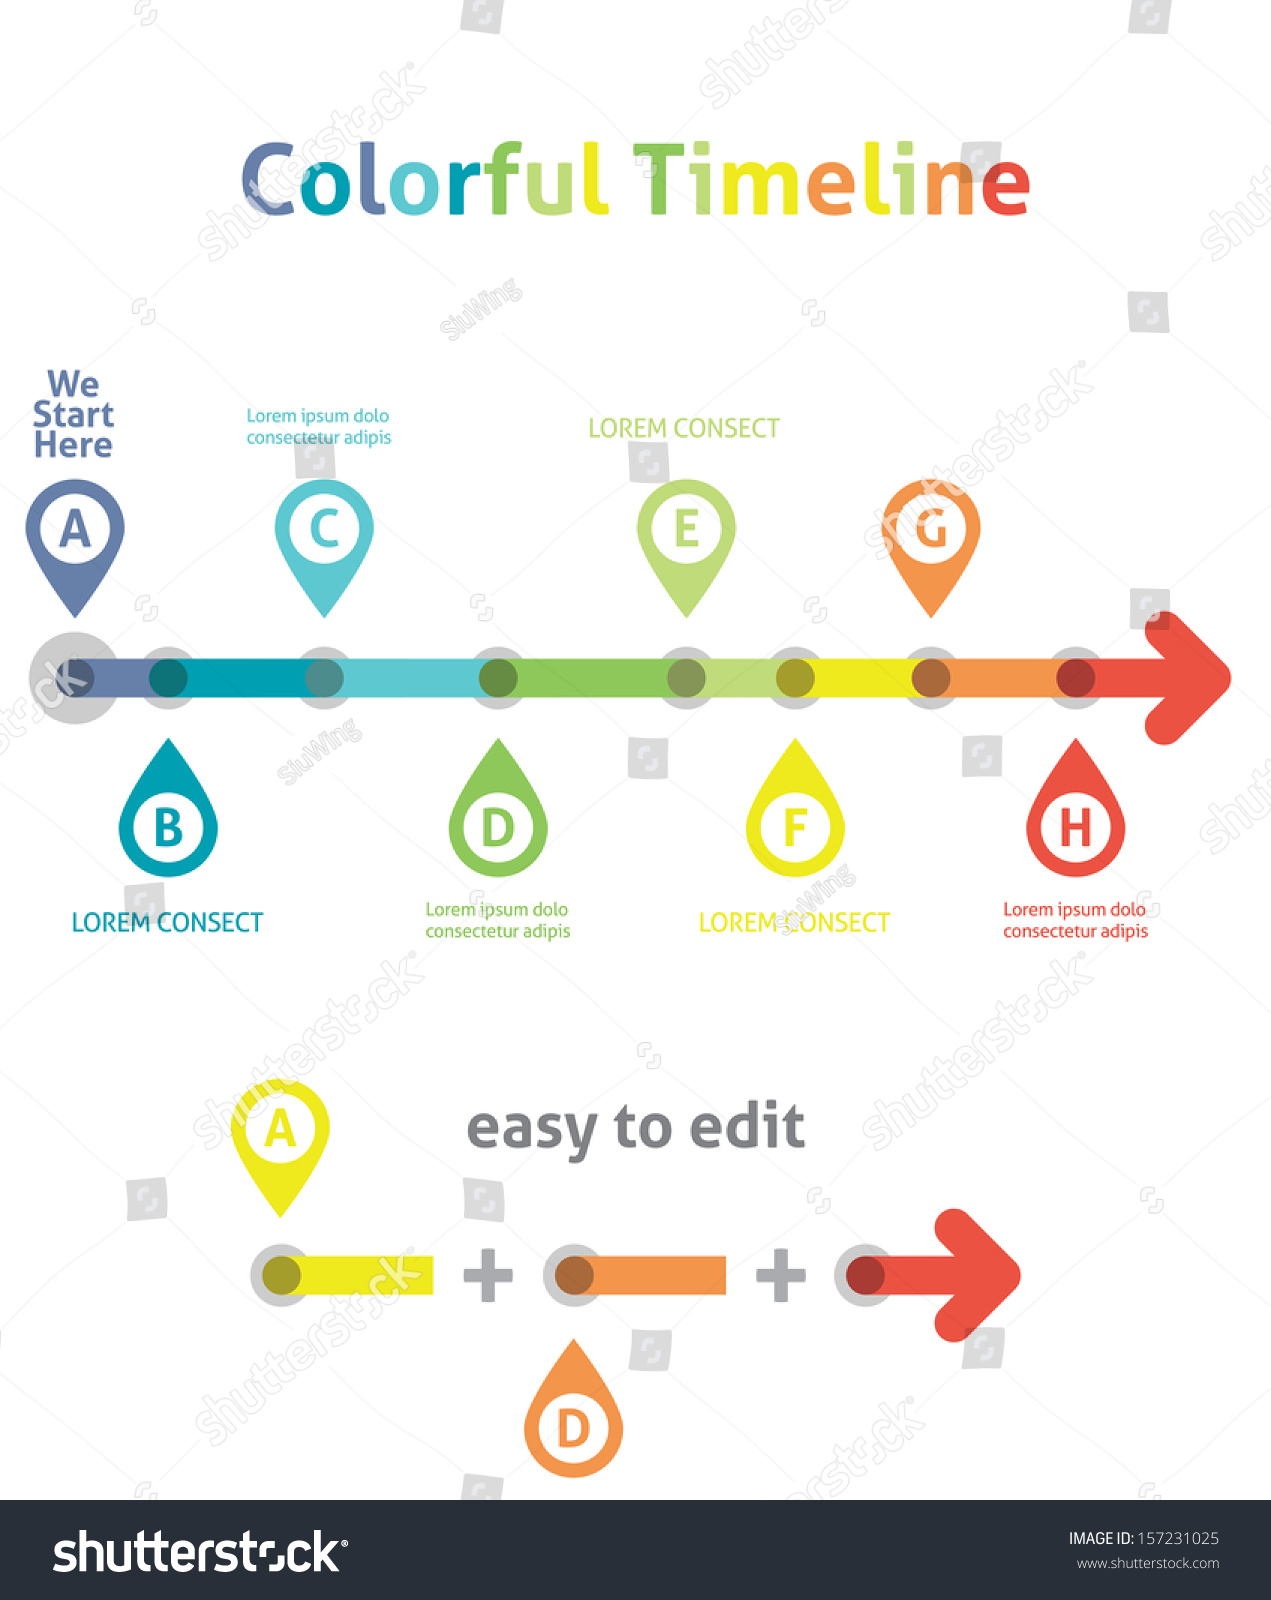 Colorful Timeline Infographic Template Easy Edit Stock. Free Thanksgiving Templates. Engineering Graduate School Rankings. Best Friend Graduation Gifts. Contract Termination Letter Template. Simple Weekly Budget Template. Most Useful Graduate Degrees. Physical Education Lesson Plans Template. Movie Script Template Pdf